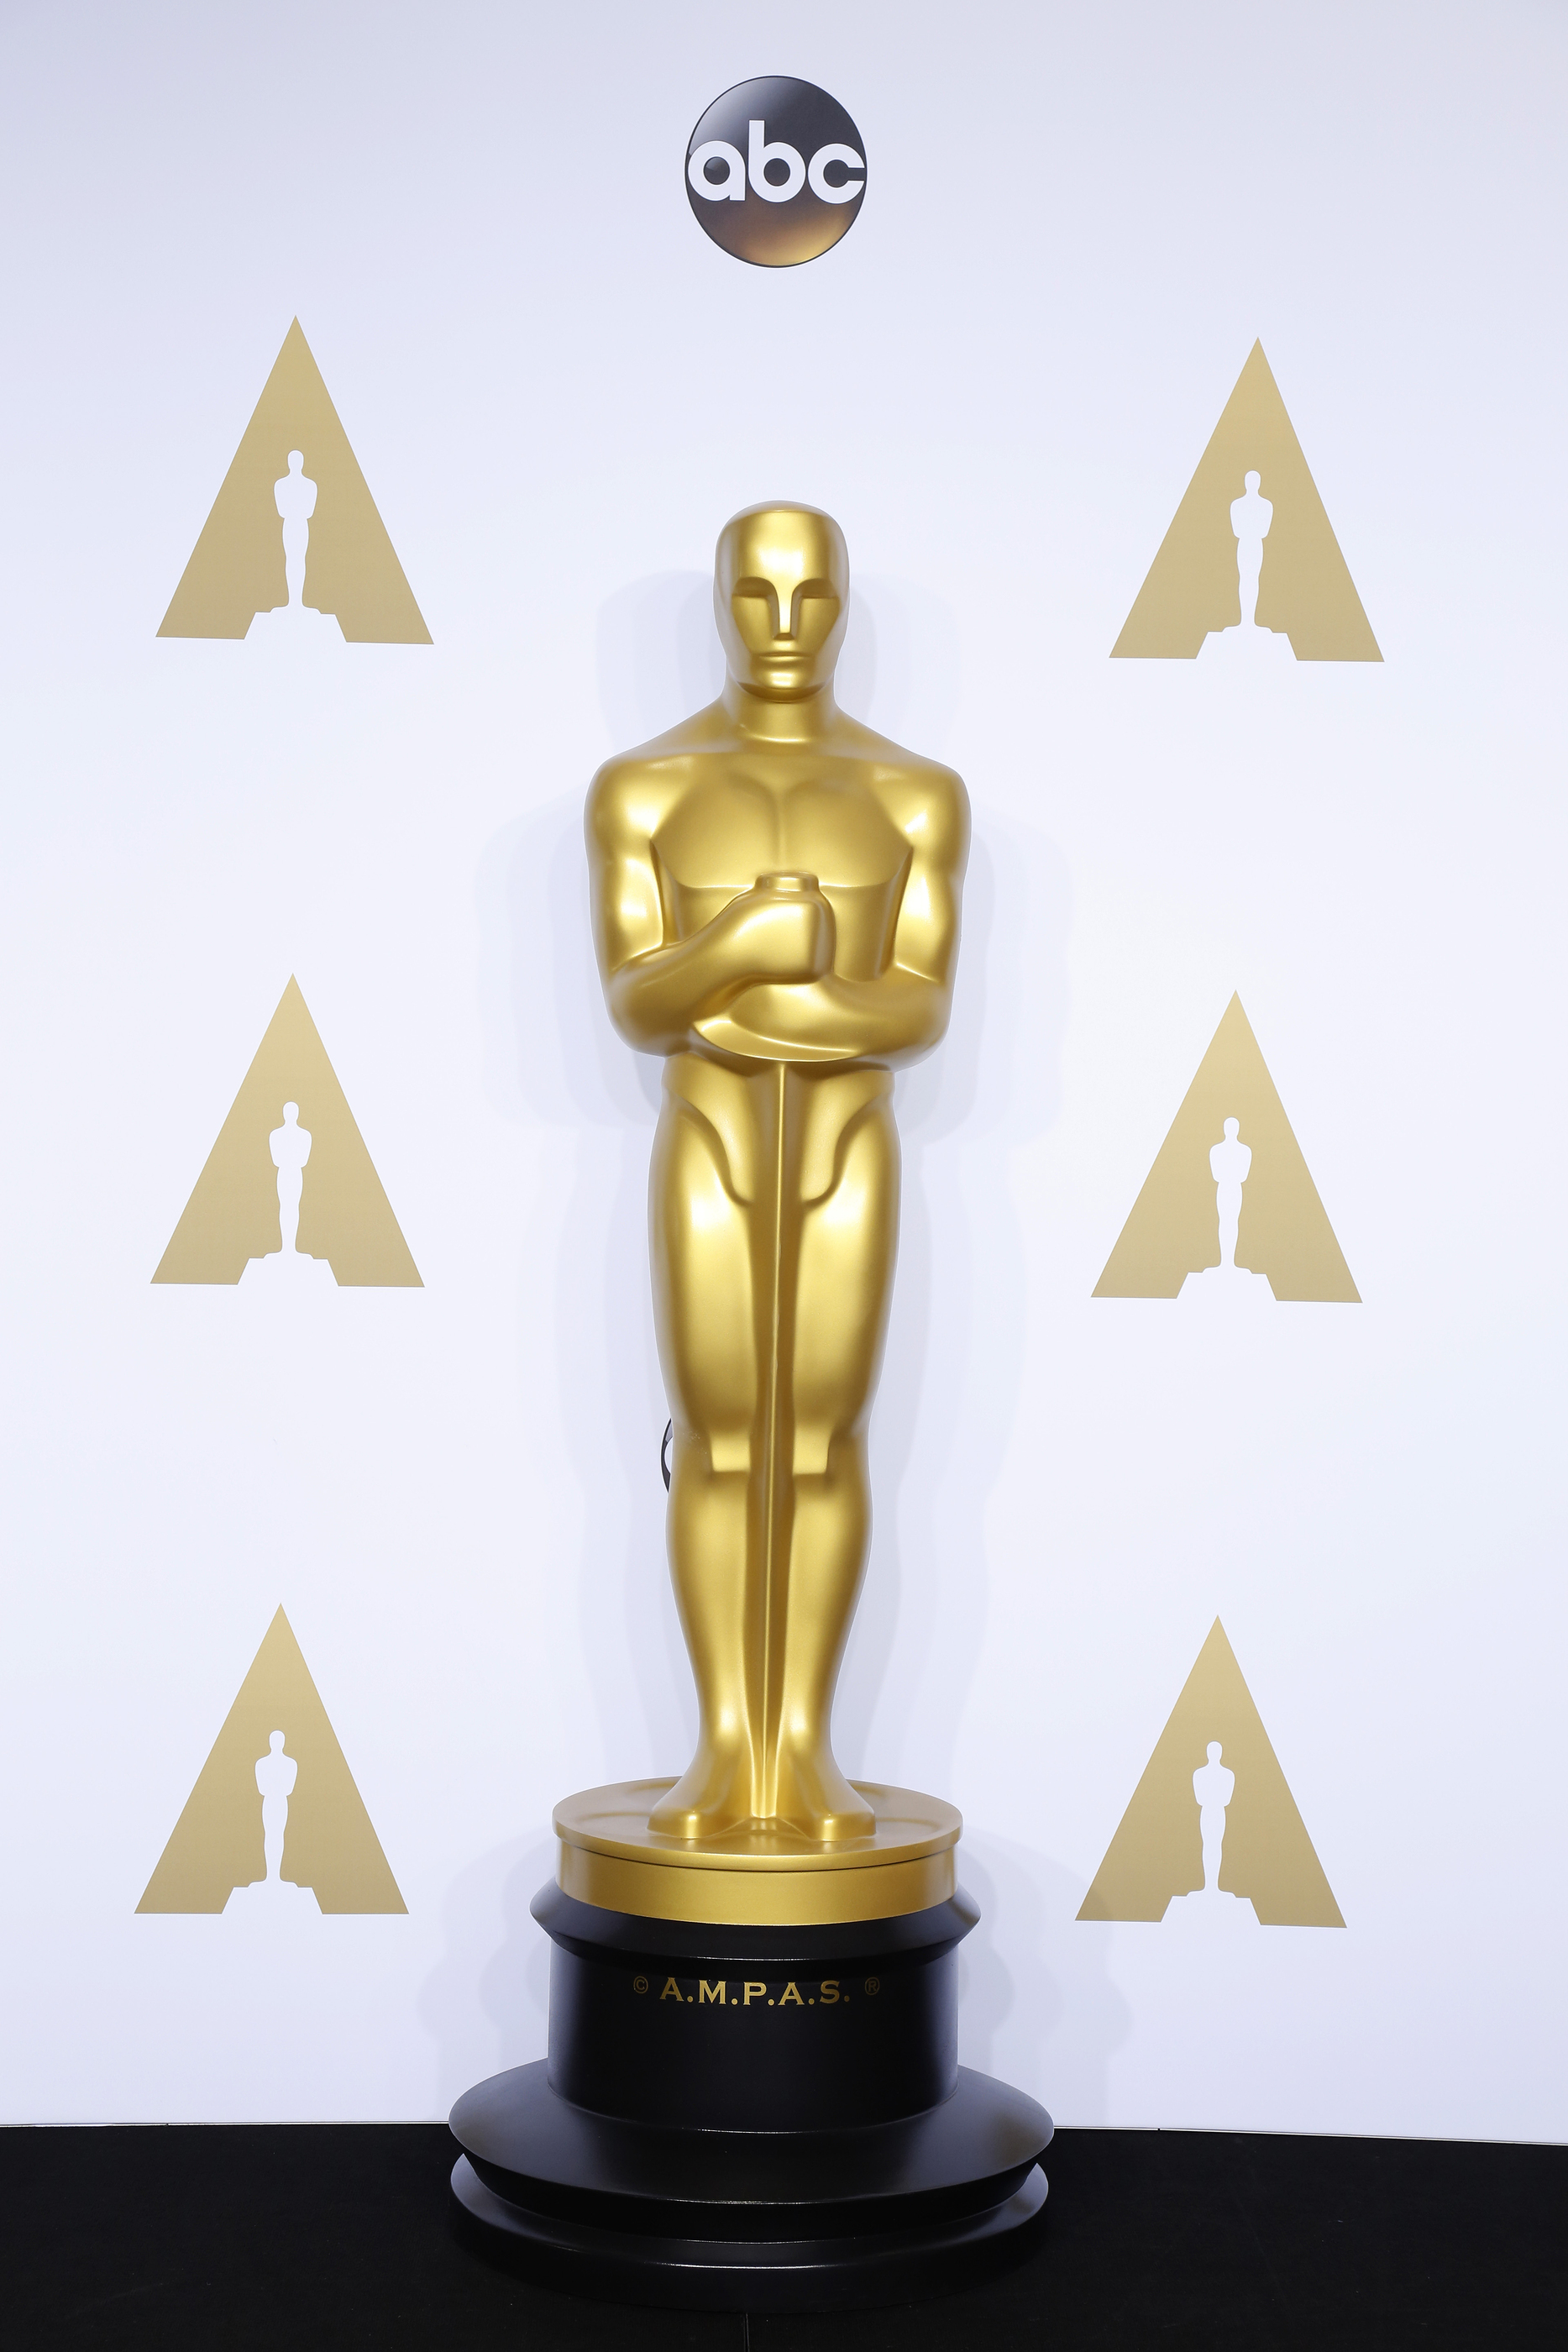 Much Oscar Worth in addition Author additionally And The Blendster Award Goes To together with Oscar Memorable Moments And Speeches We Like Part Two as well PA T38M. on academy award trophy